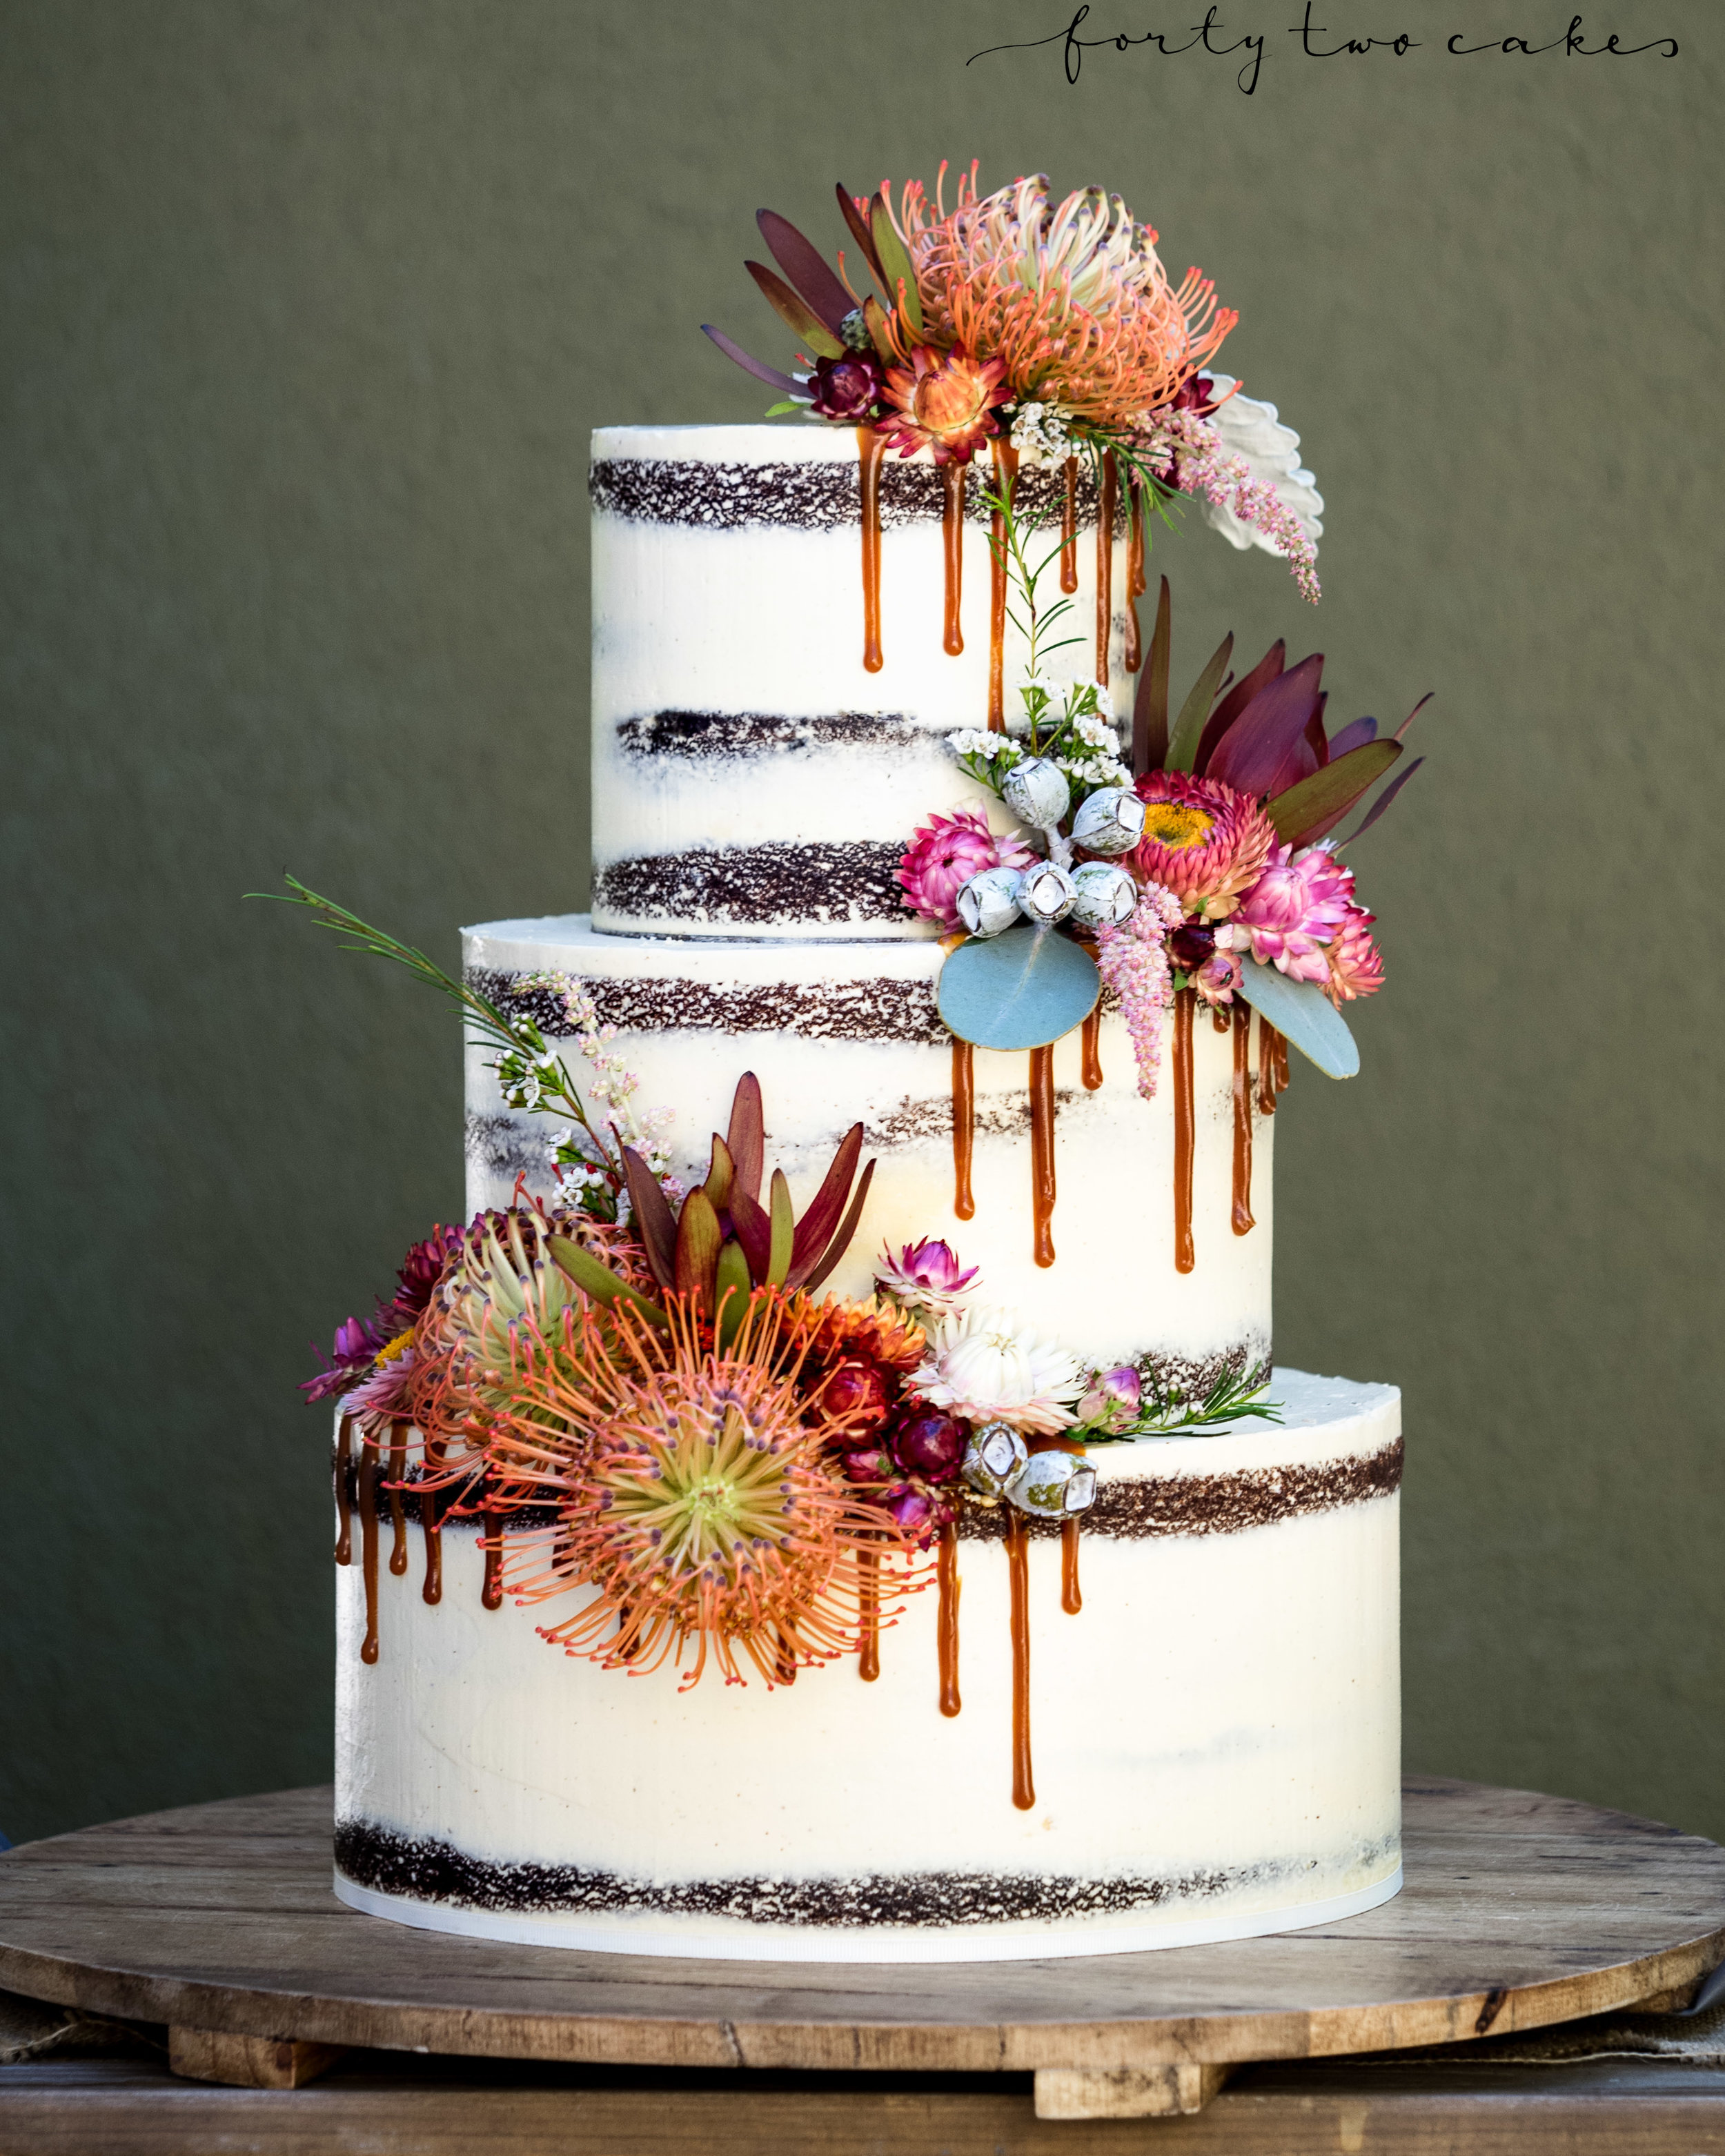 Forty-Two Cakes - Seminaked-15-2.jpg